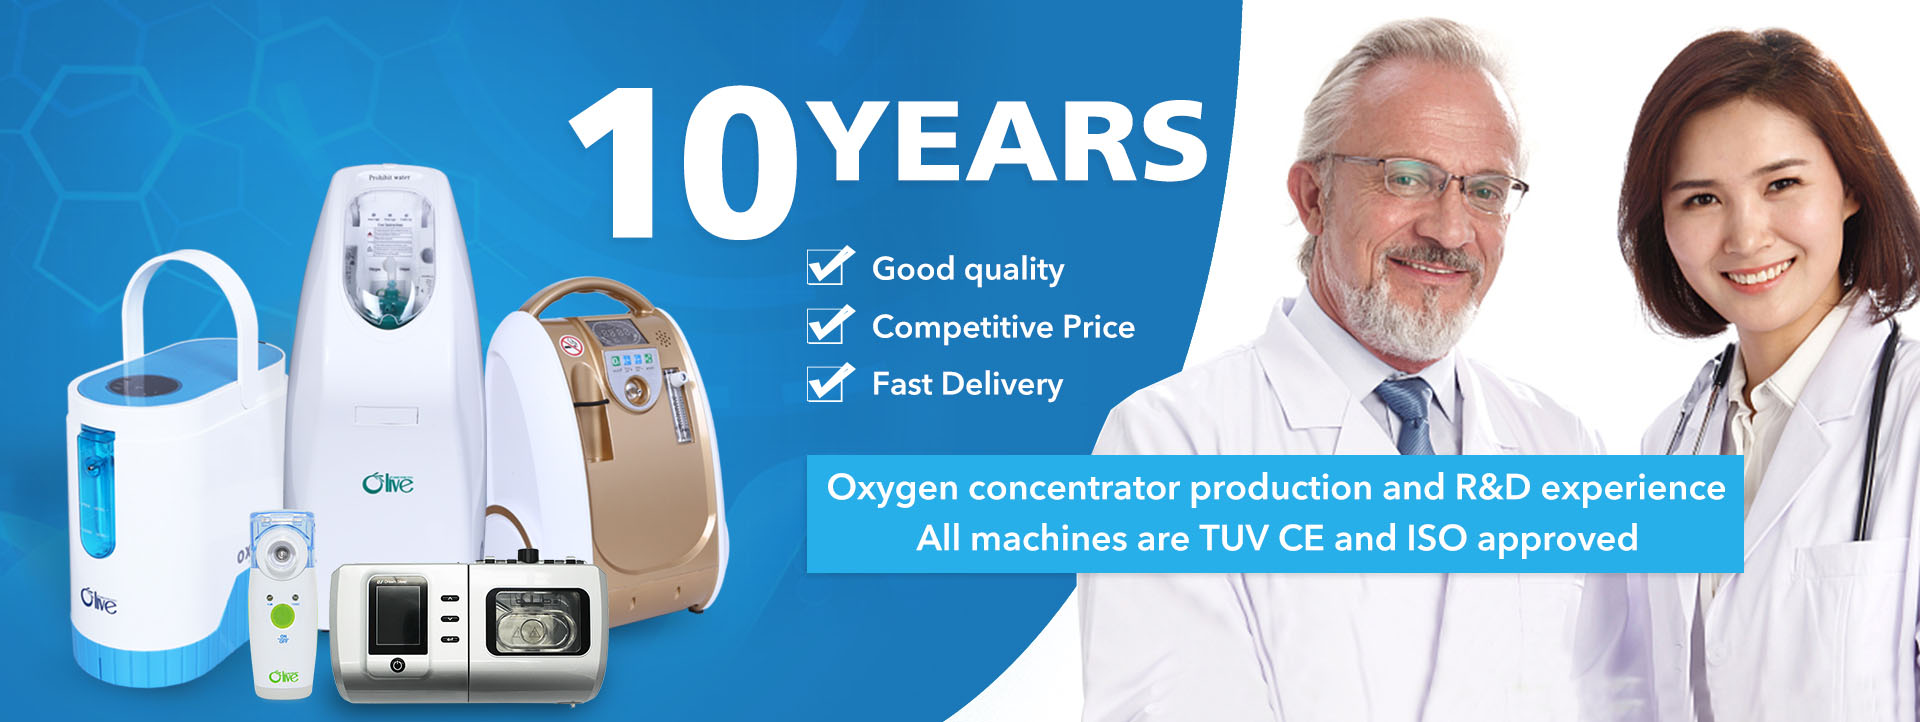 oxygen concentrator,CPAP machine,nebulizer